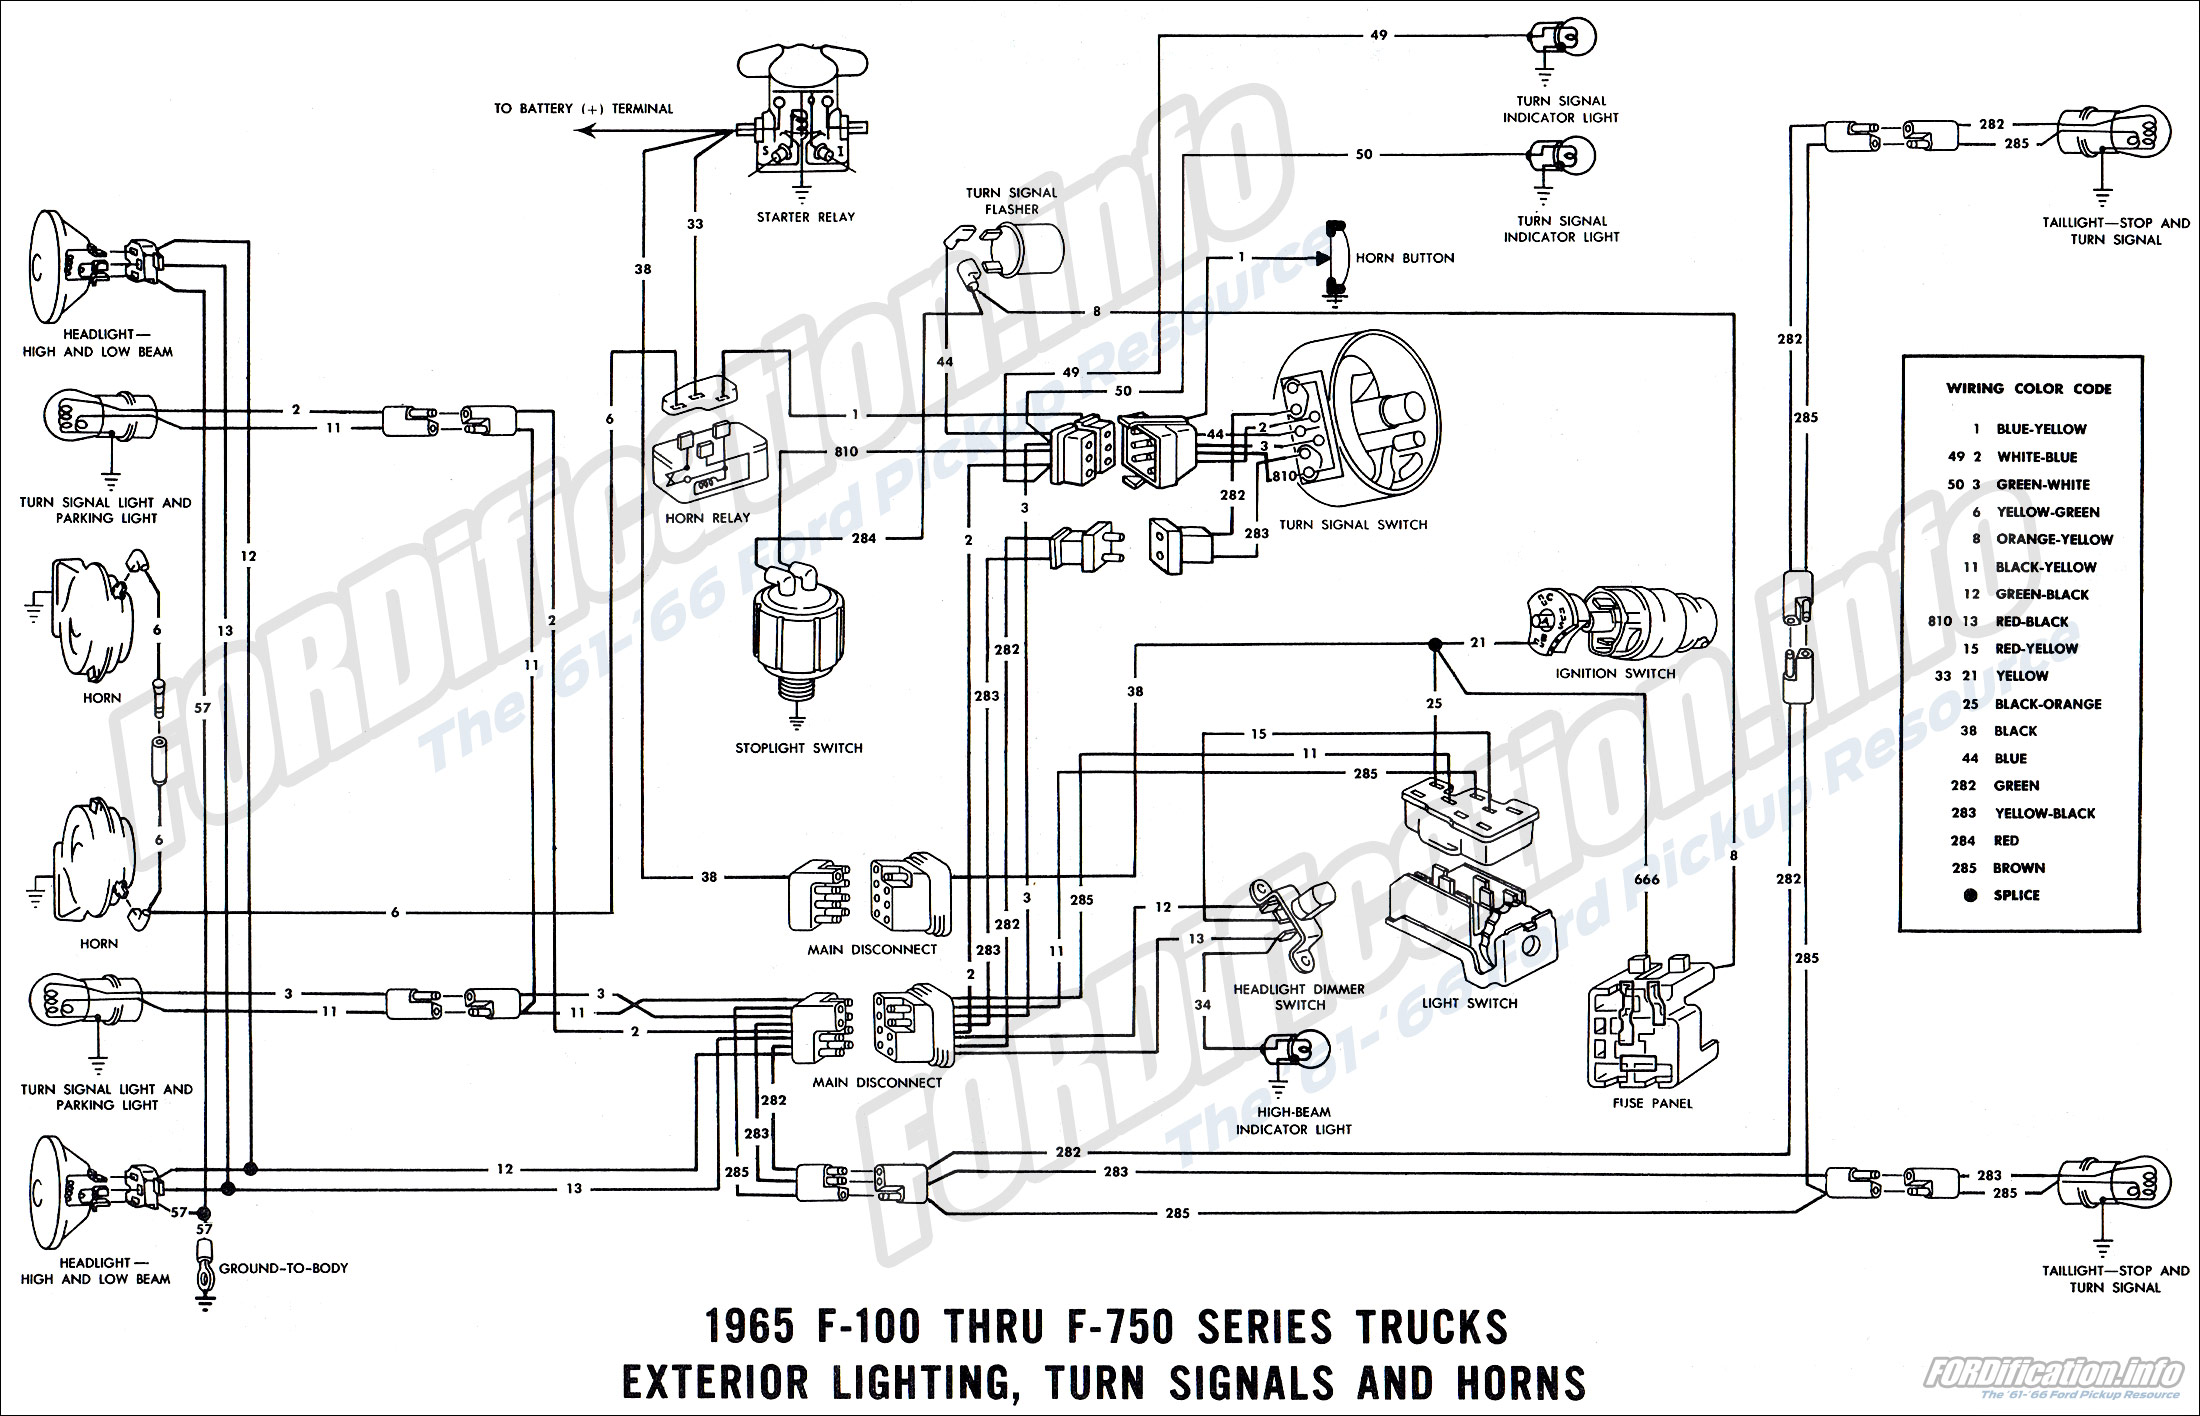 1974 F250 Wire Schematic - Wiring Diagram K8 Daisy Chain Light Wiring Diagram on